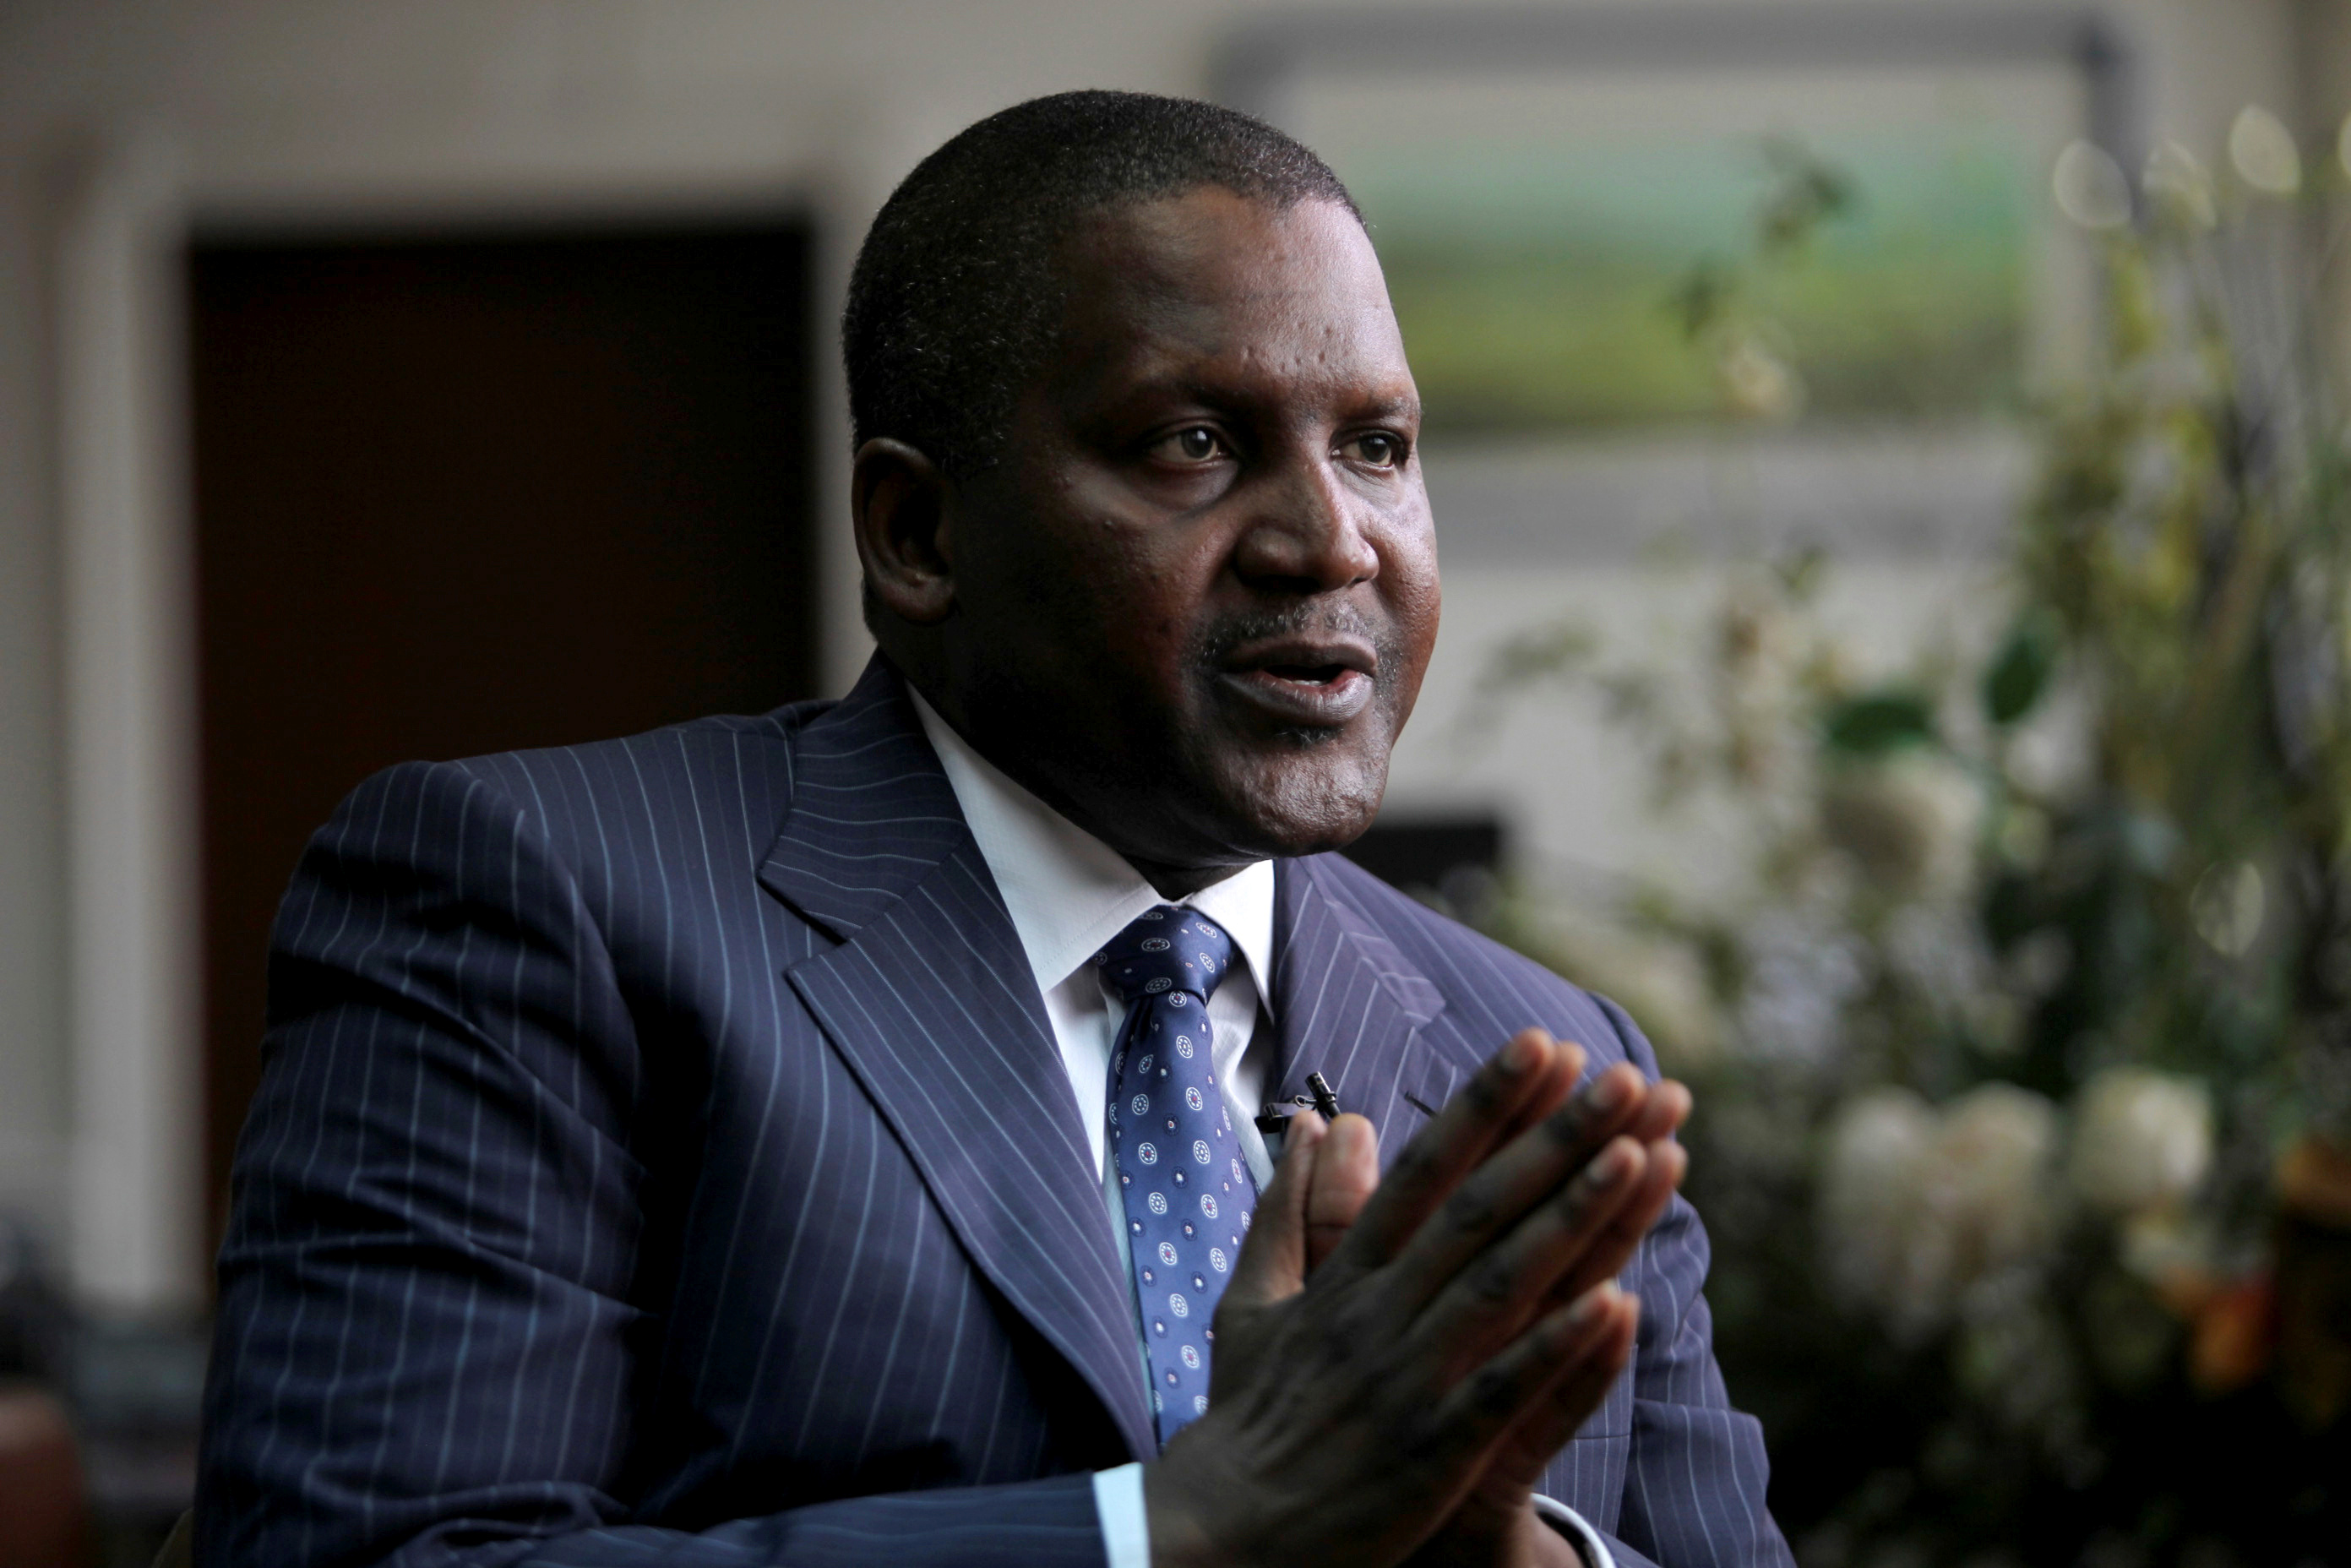 Founder and Chief Executive of the Dangote Group Aliko Dangote gestures during an interview with Reuters in his office in Lagos, Nigeria, file. REUTERS/Akintunde Akinleye/File Photo